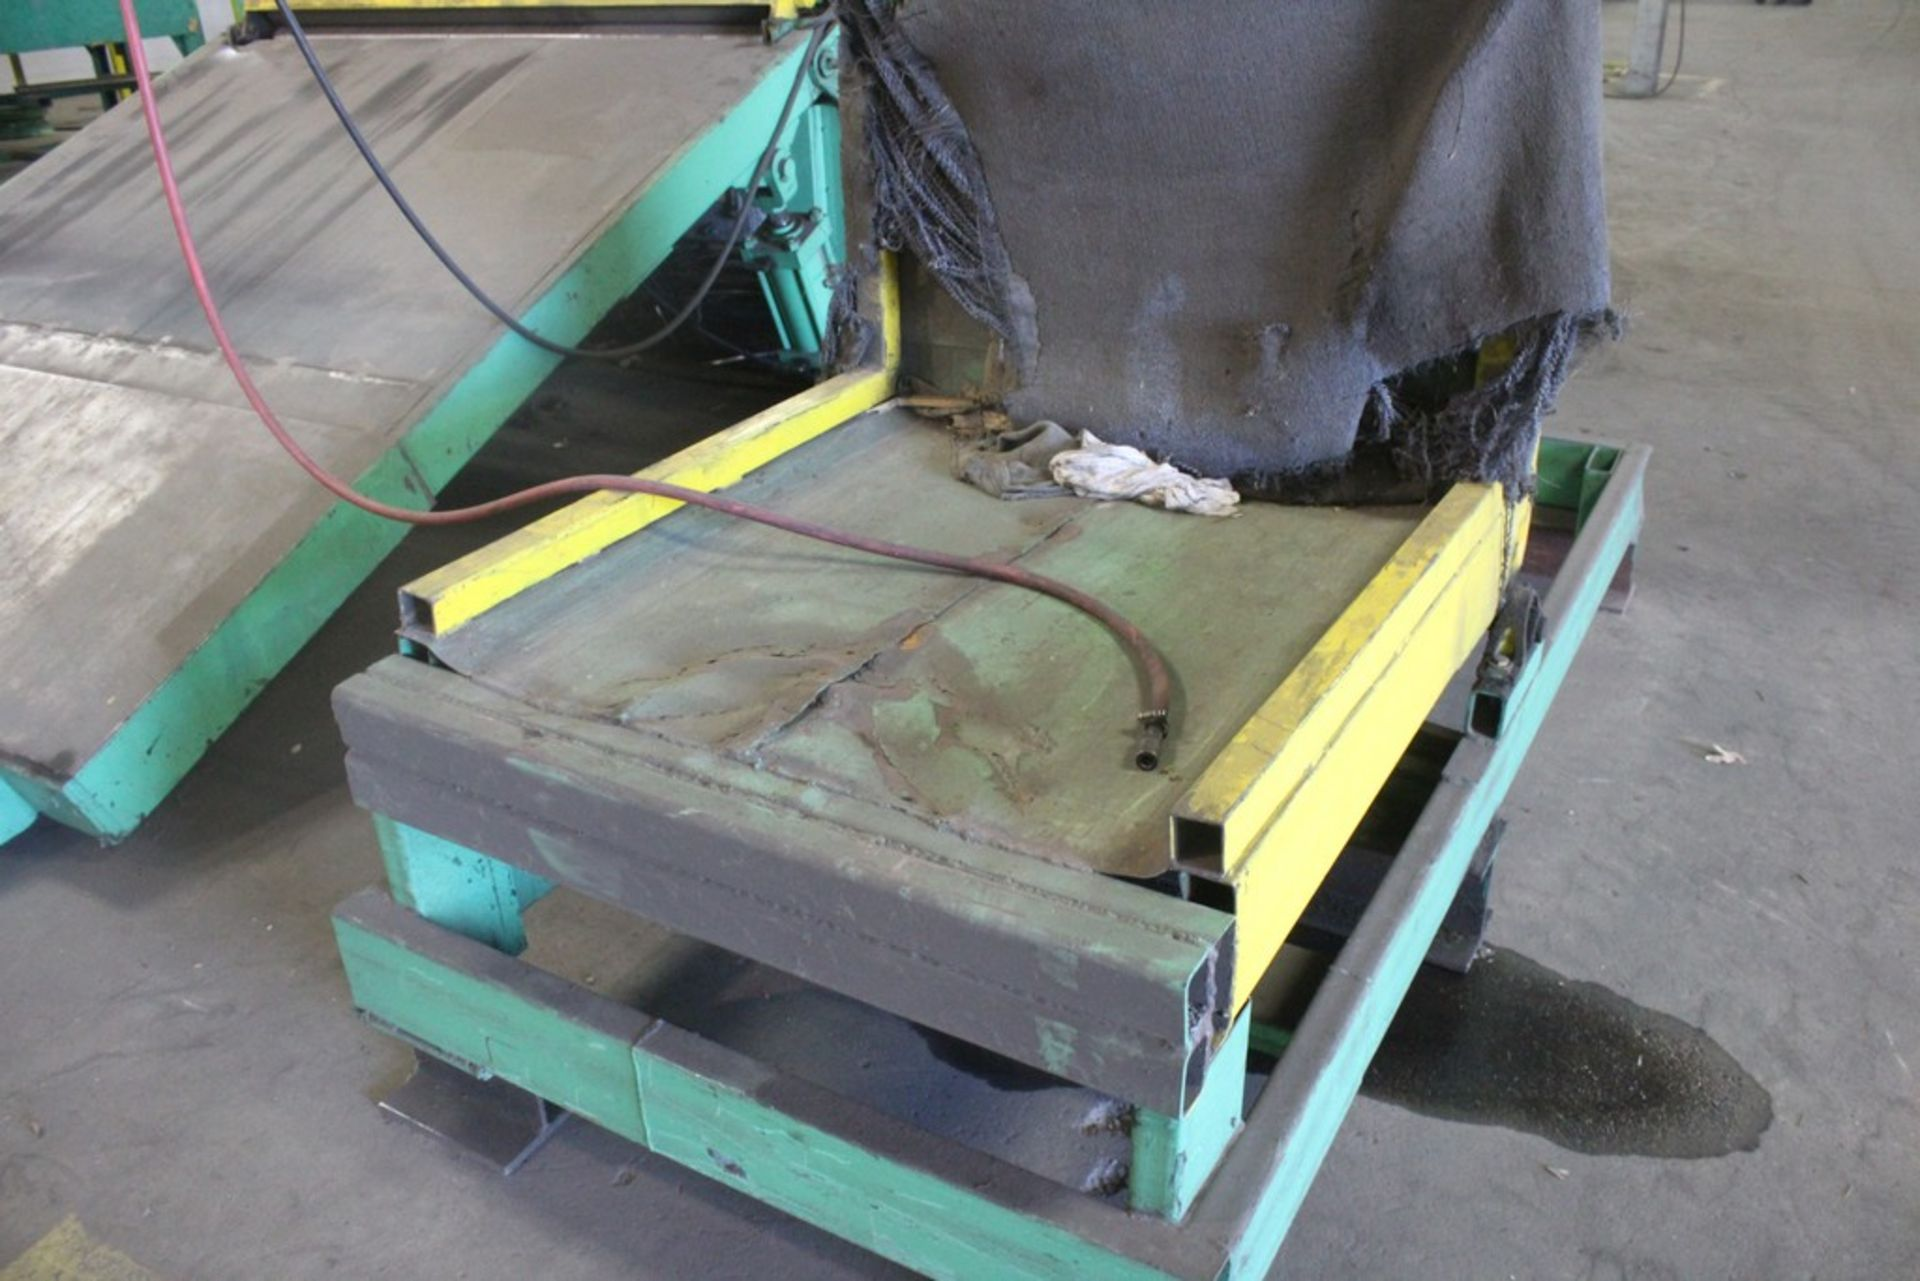 """Lot 54 - 6000 Lbs Capacity Hydraulic Operated Upender, Serial Number: N/A 40"""" x 42"""" Platform - Machine"""